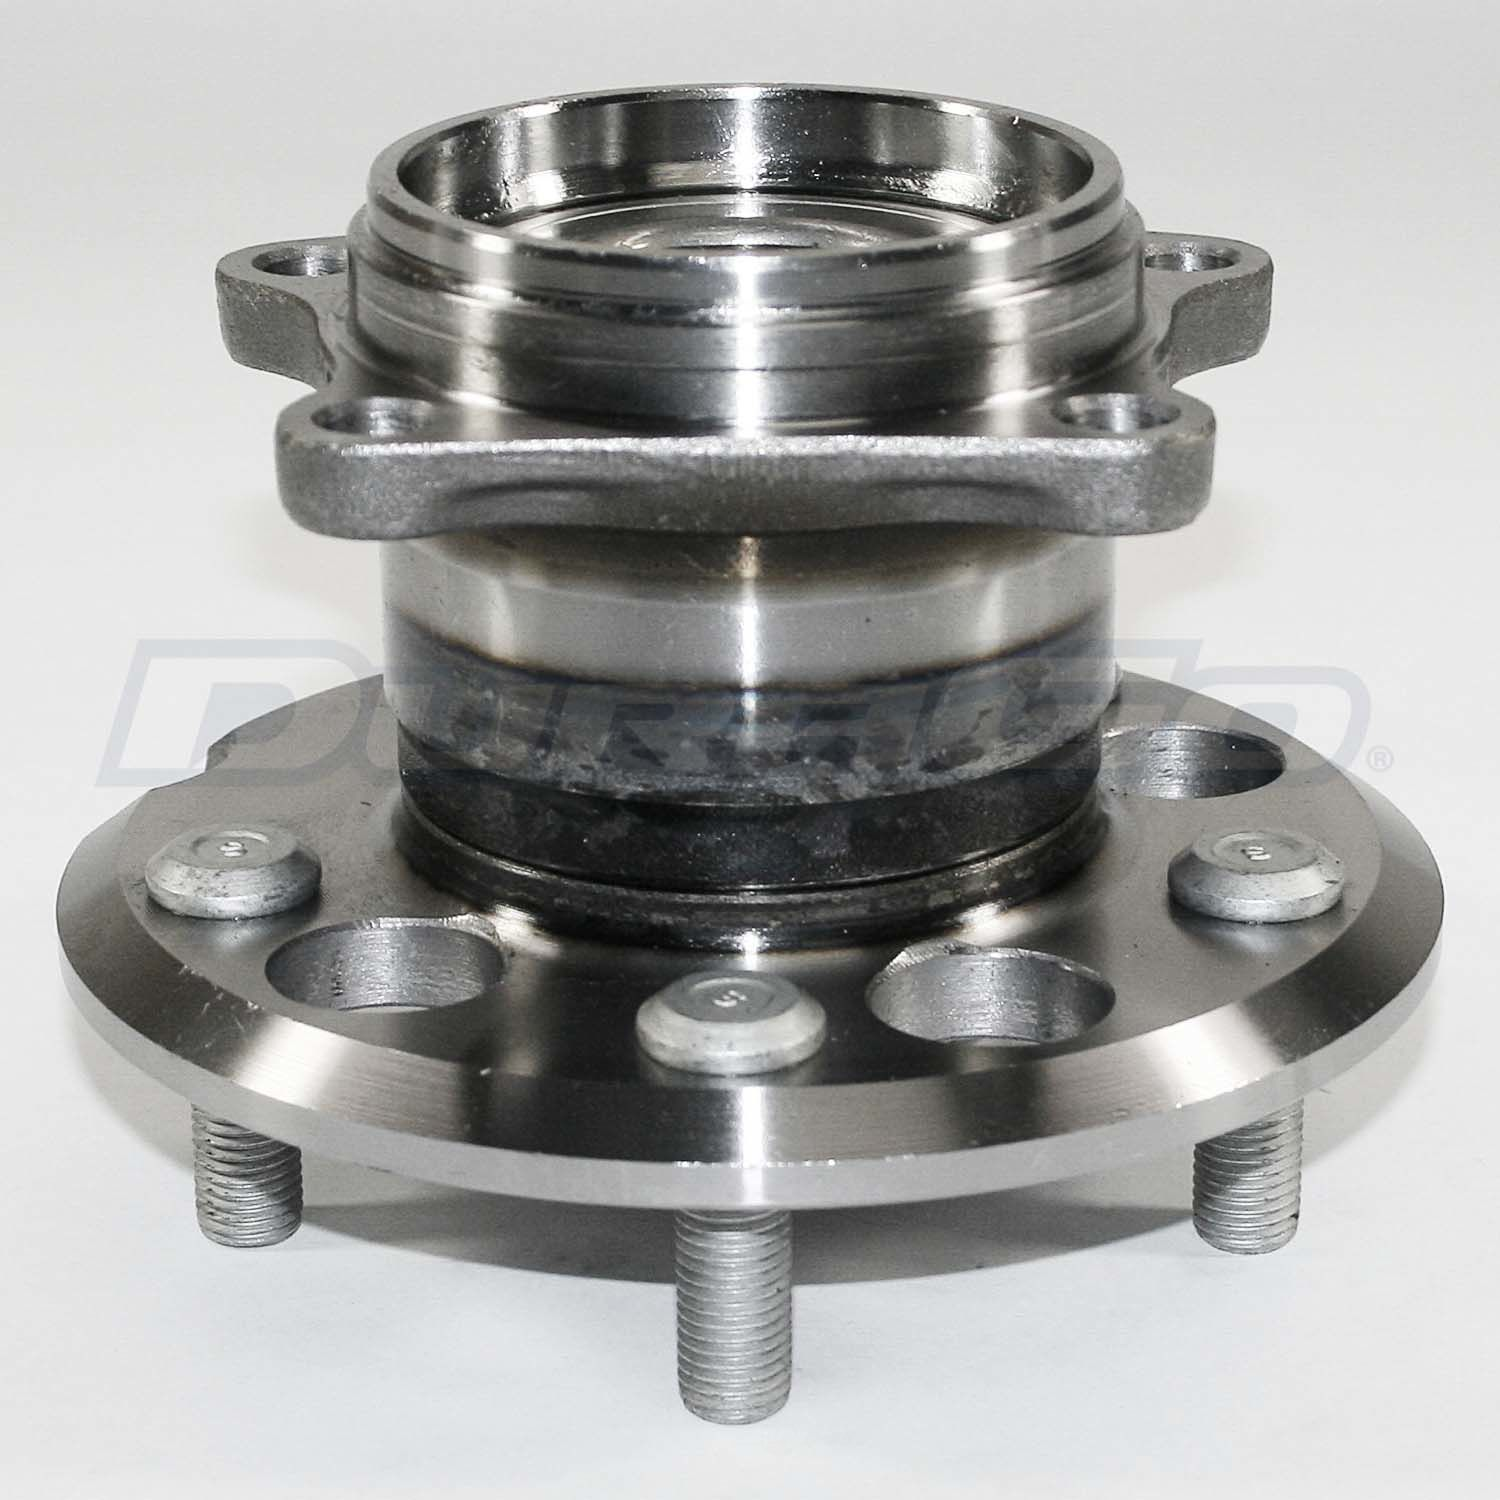 DURAGO - Axle Bearing and Hub Assembly - D48 295-12281